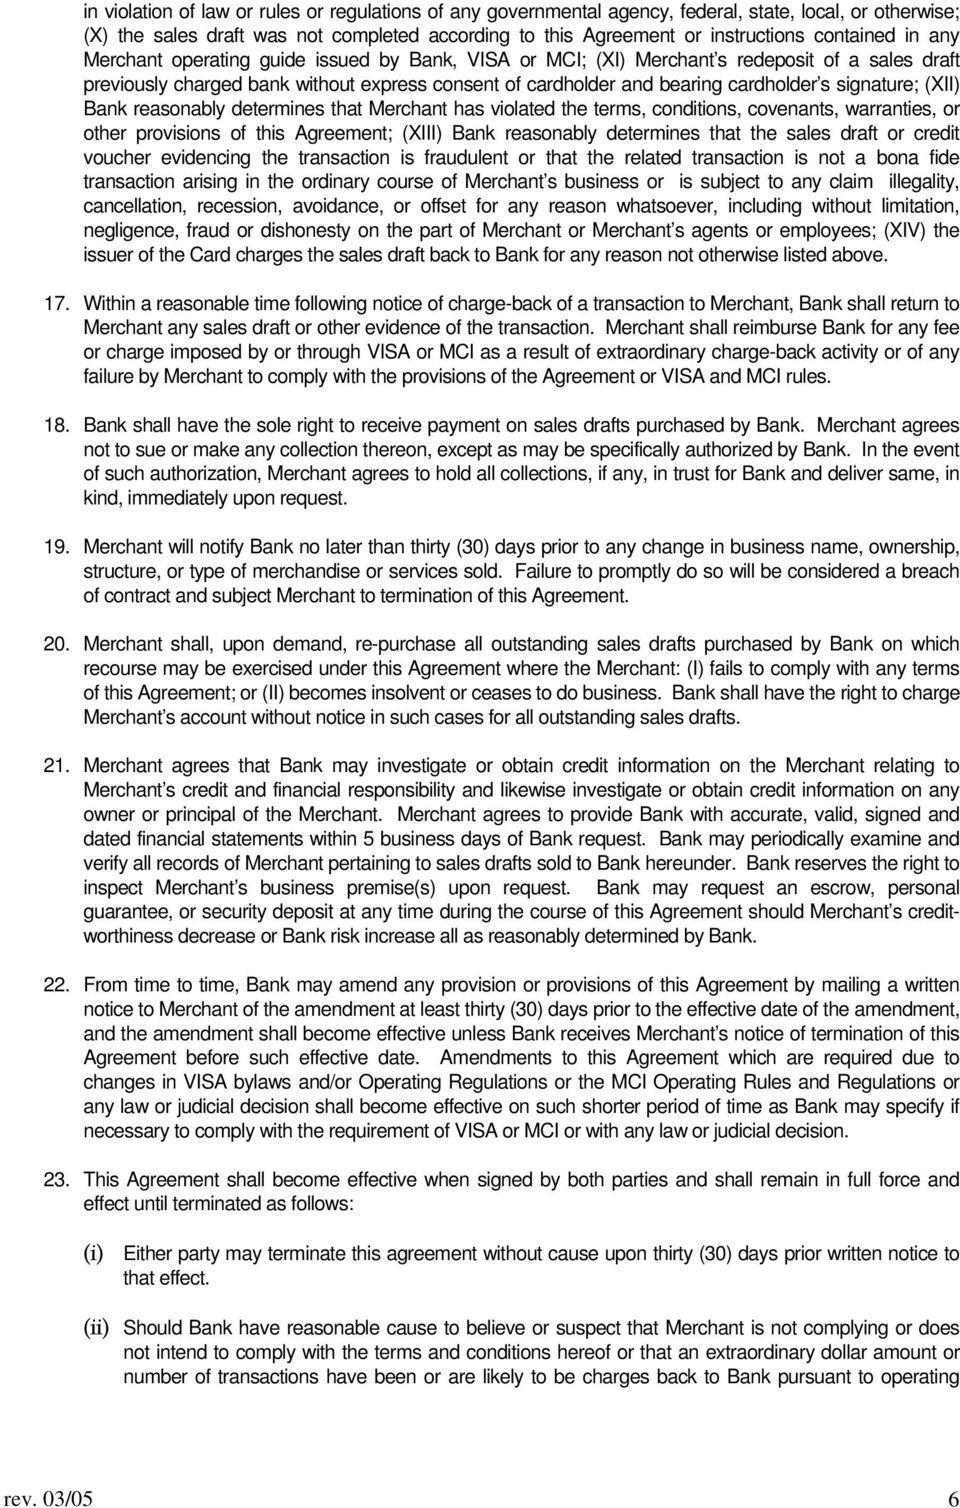 Merchant Agreement This Agreement Is Entered Into By And Between